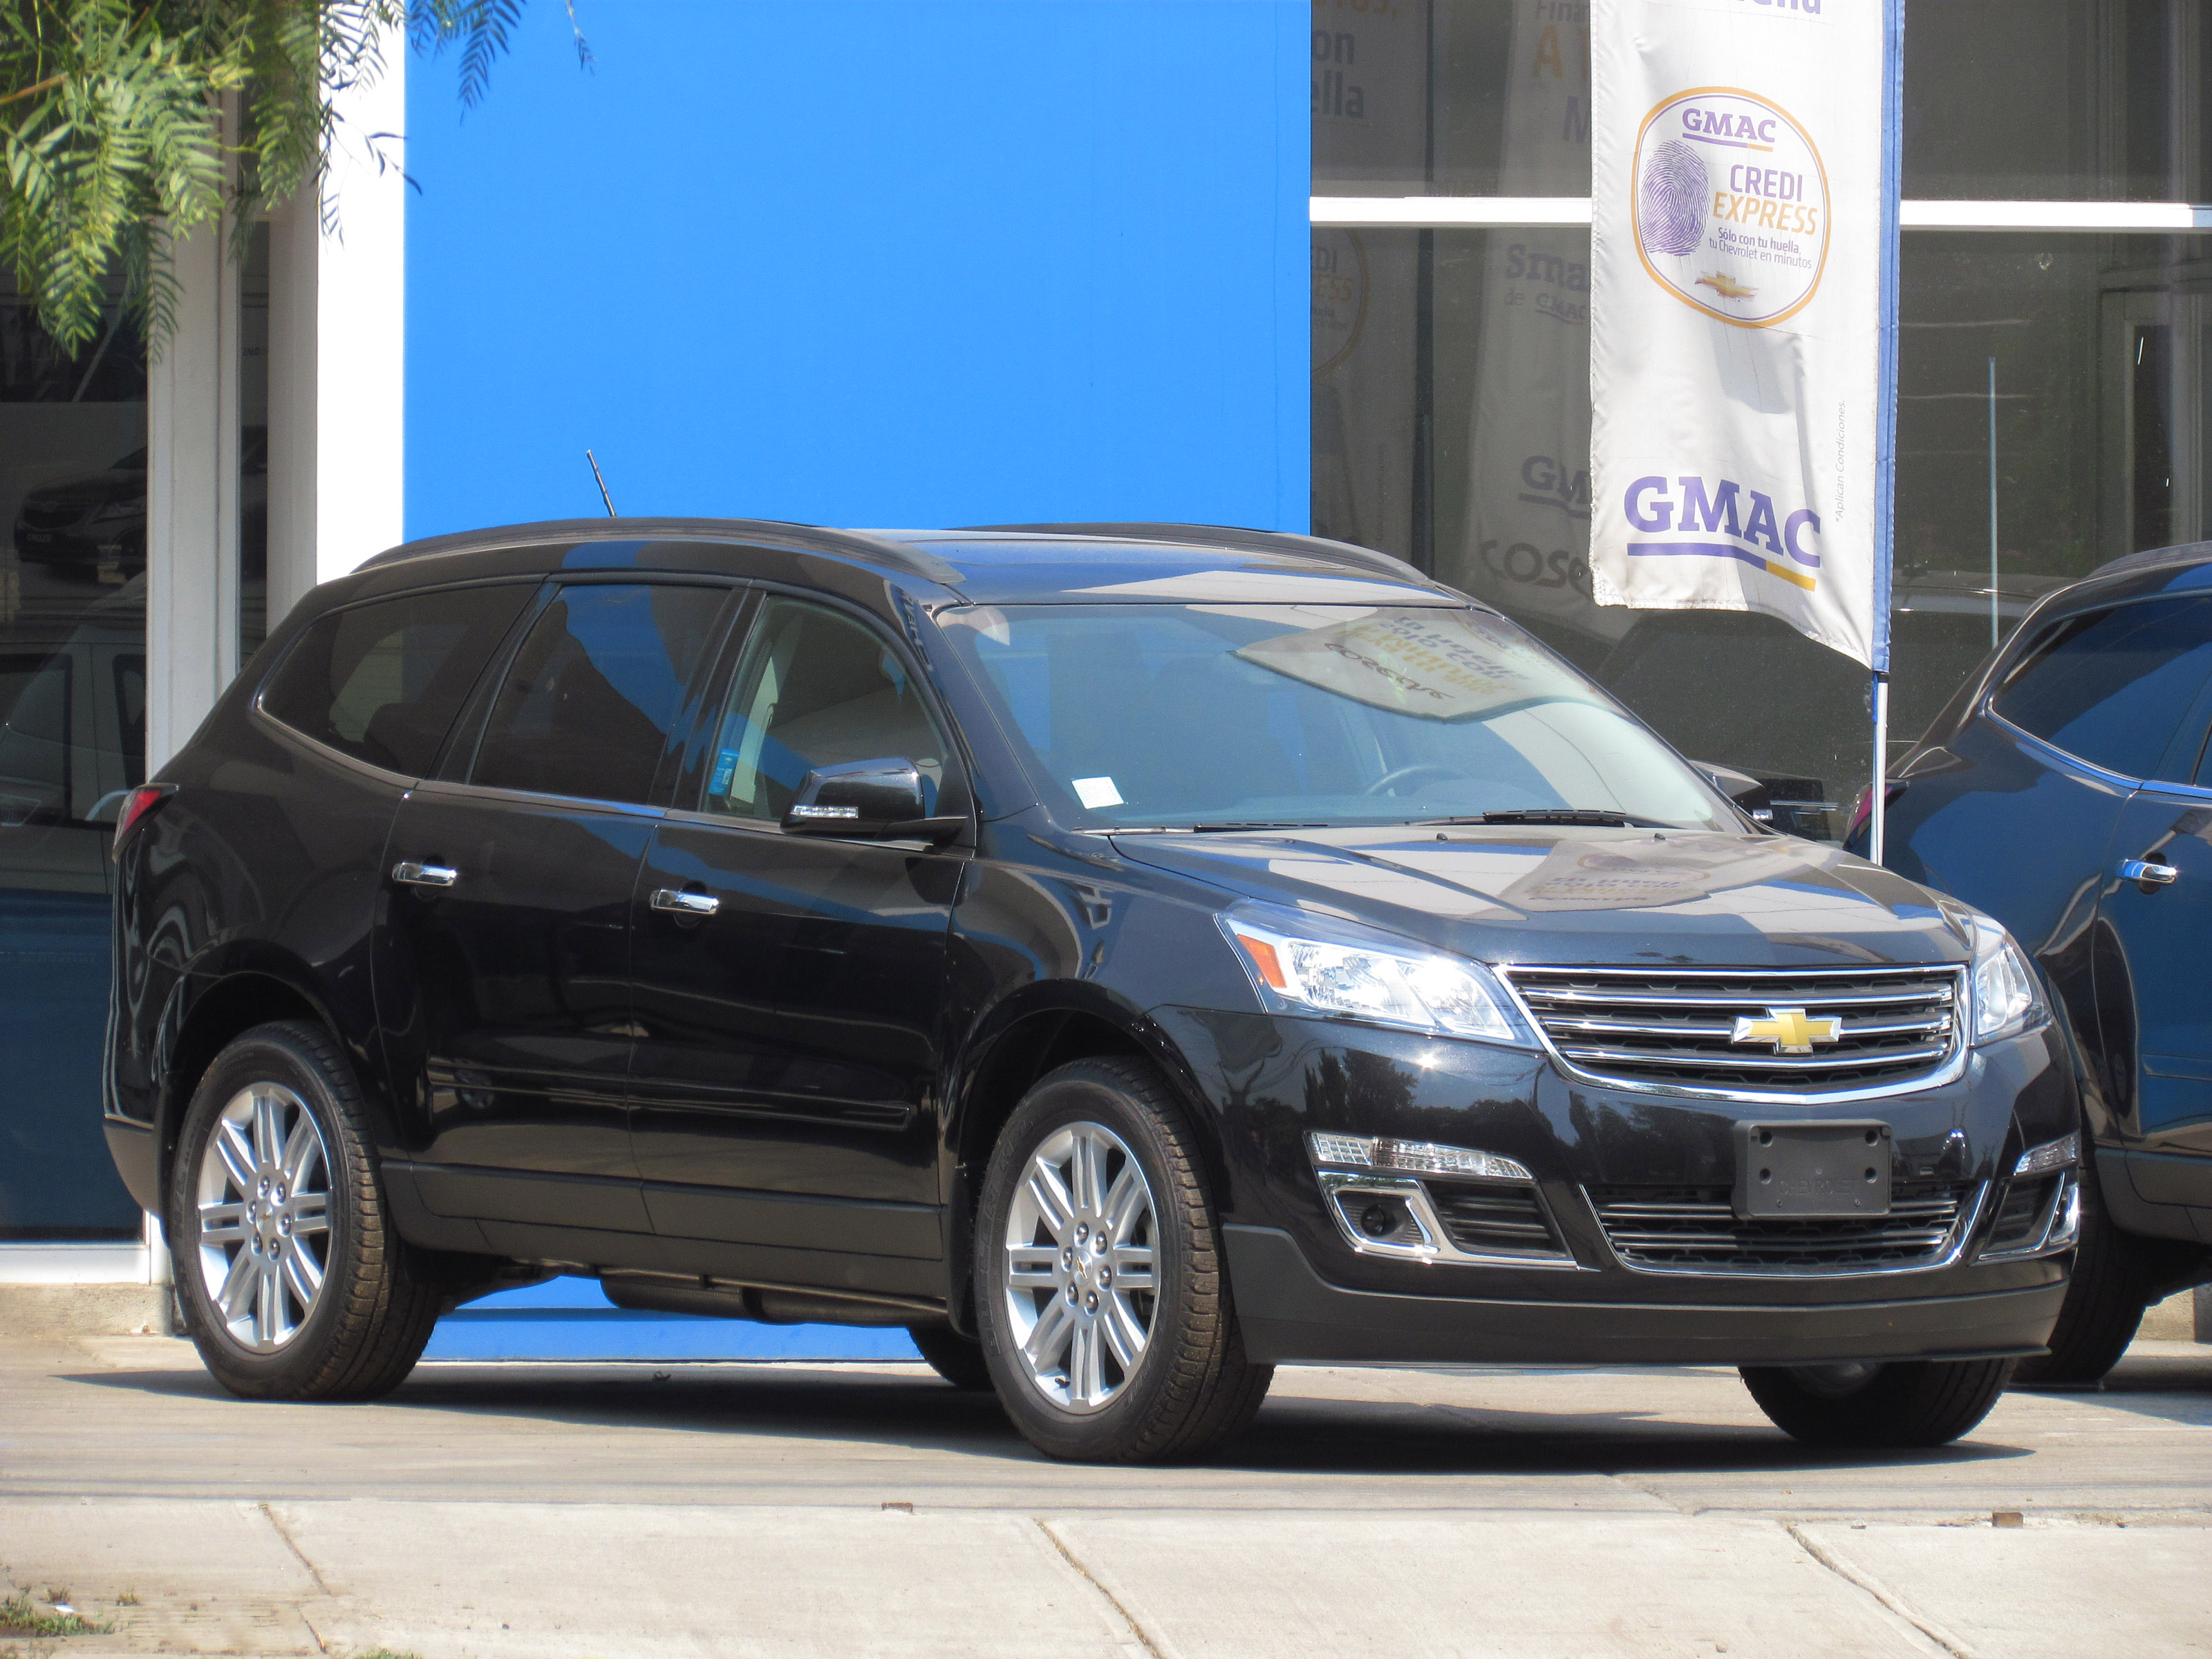 changes central authority updates rpo chevrolet gm blog gets feature new one traverse